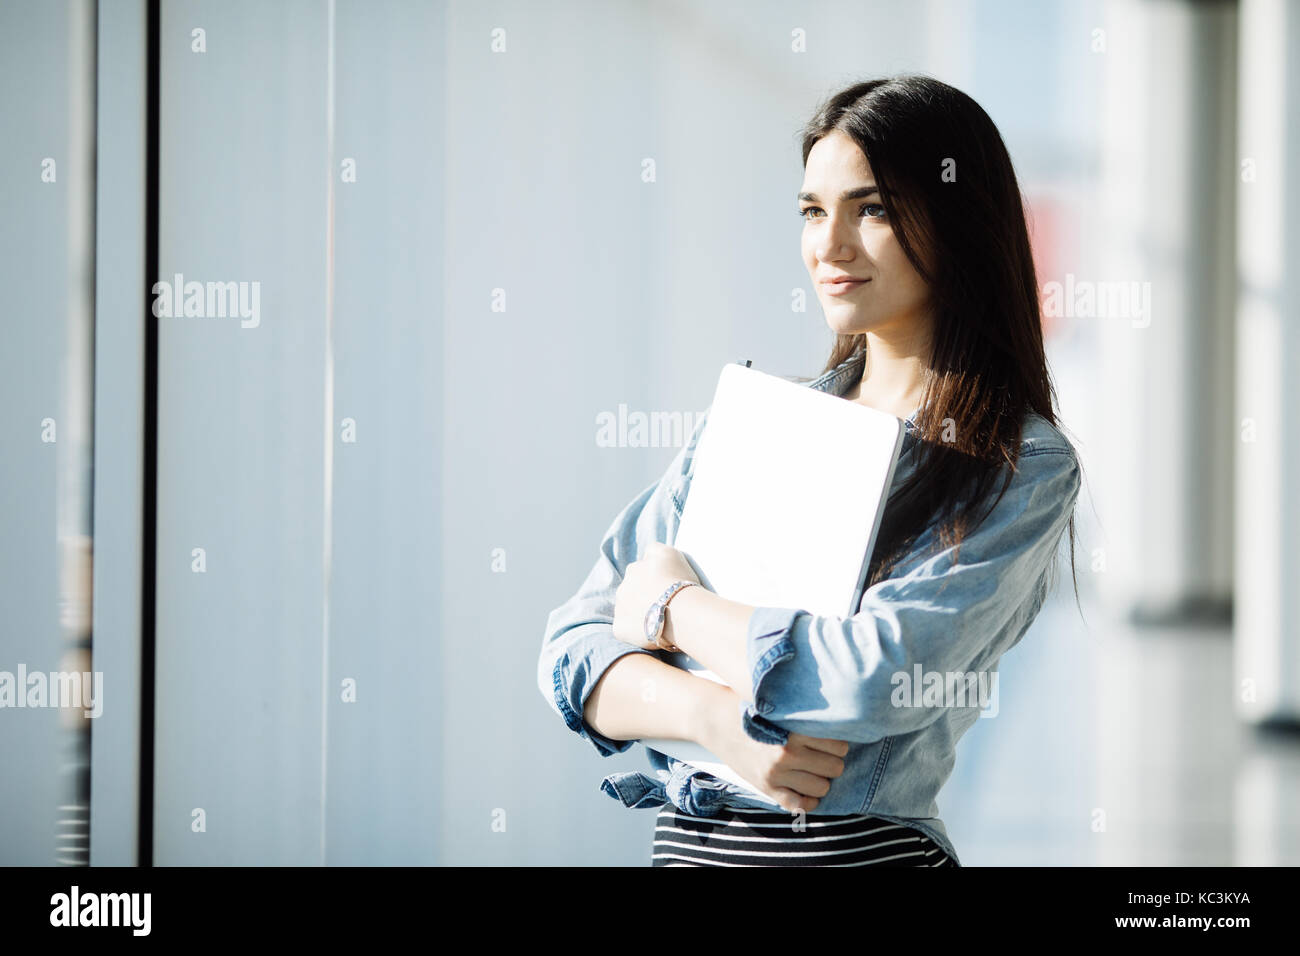 Successful female office worker with net-book is standing in skyscraper interior against big window with city view - Stock Image